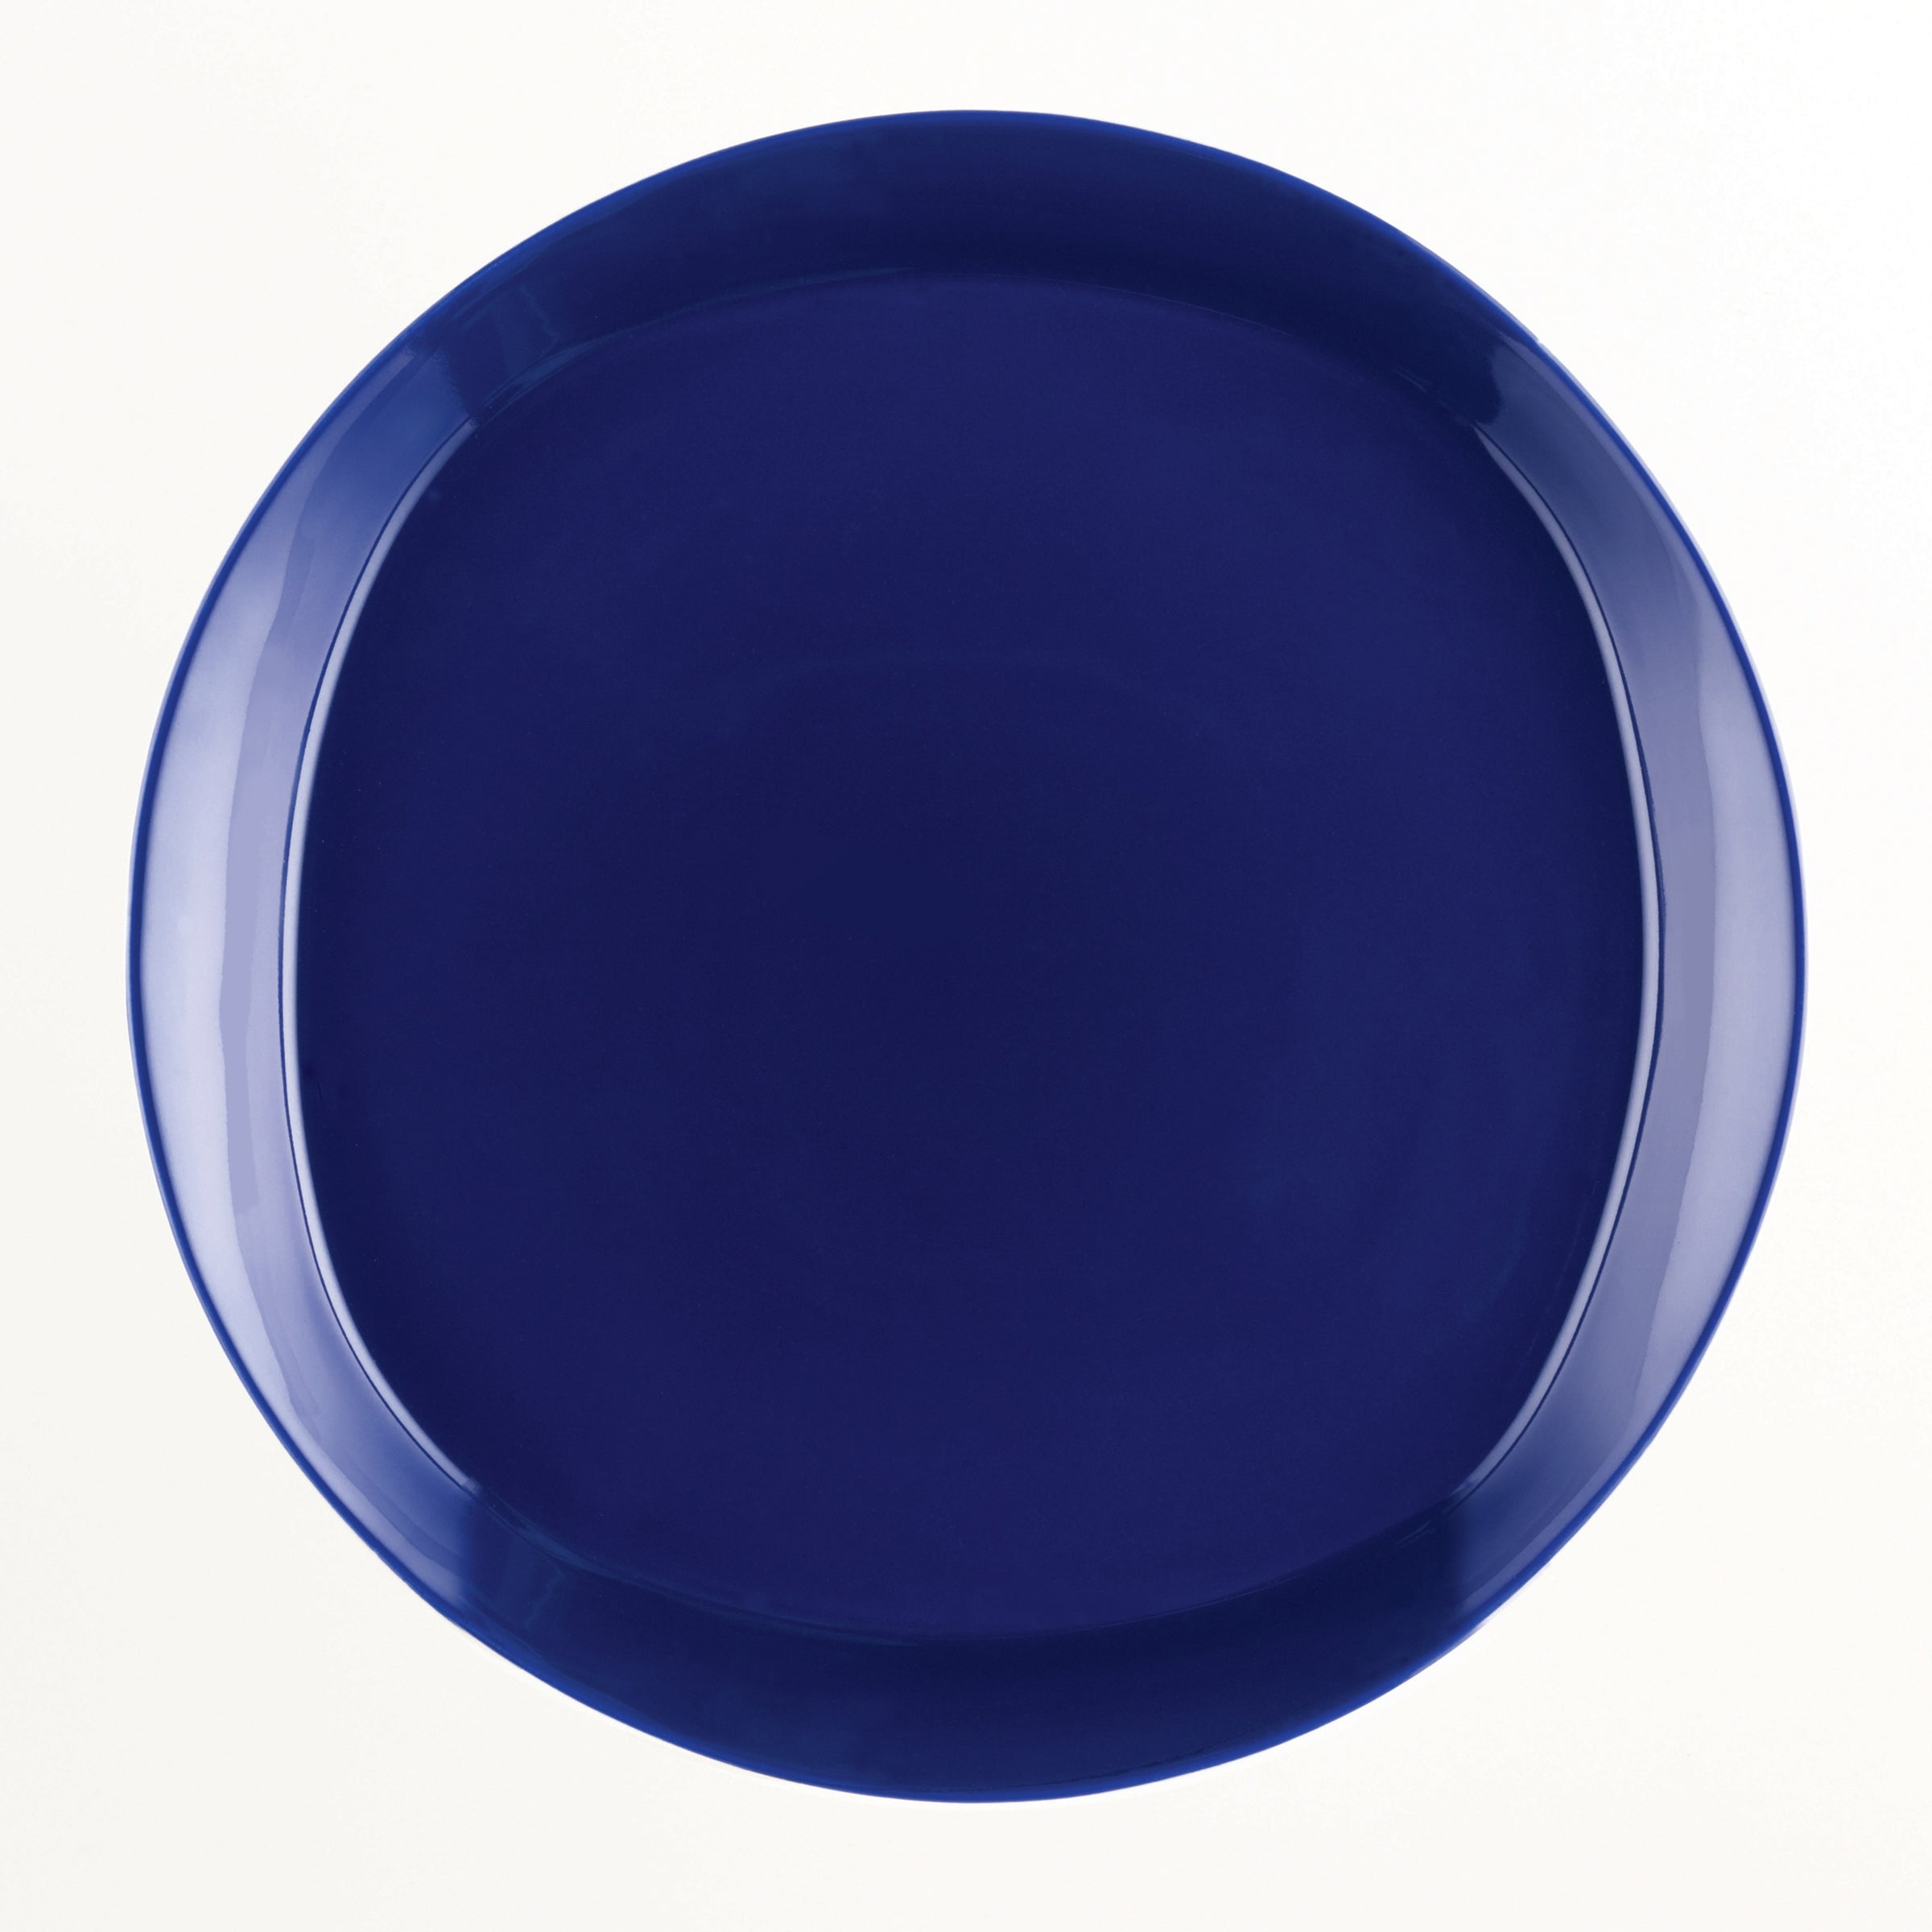 Rachael Ray u0027Round and Squareu0027 4-piece Blue Raspberry Dinner Plate Set - Free Shipping On Orders Over $45 - Overstock - 14916641 & Rachael Ray u0027Round and Squareu0027 4-piece Blue Raspberry Dinner Plate ...